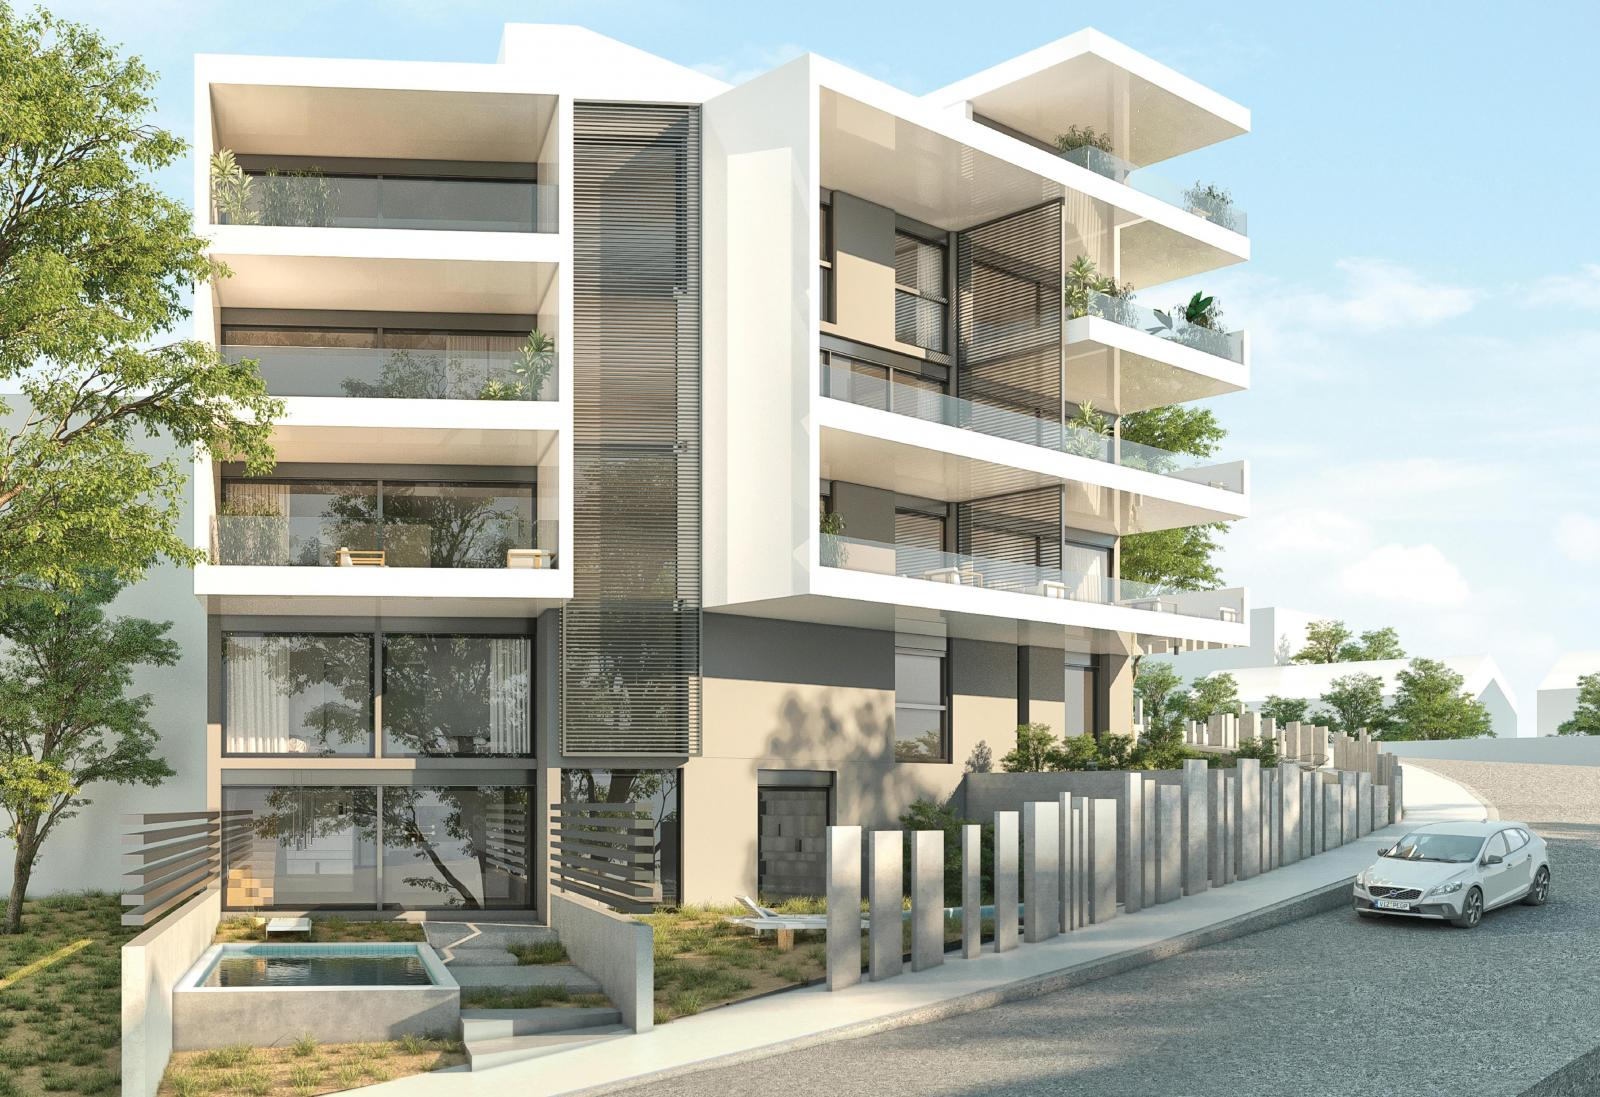 external view of modern apartment complex with greenary and parking